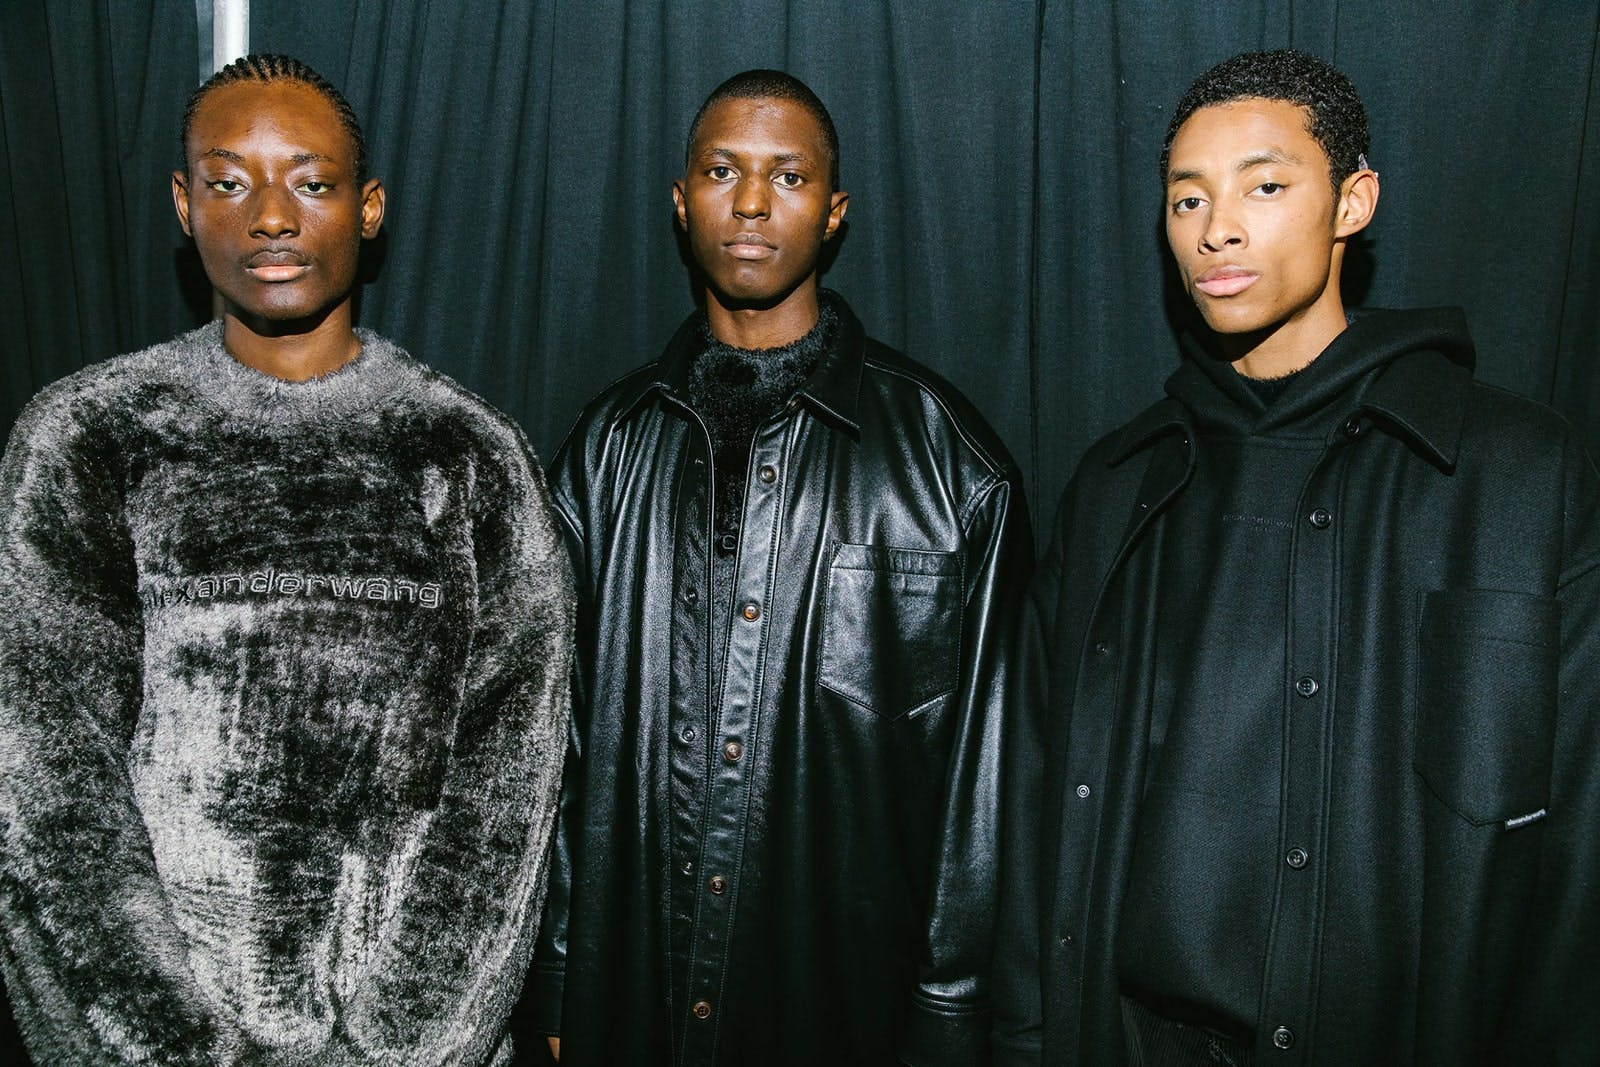 Alexander Wang Backstage Models in Embroidered Logo Pullover in Grey Oversized Long Shirt Jacket in Leather and Embroidered Logo Hoodie in Black Spring 20 RTW